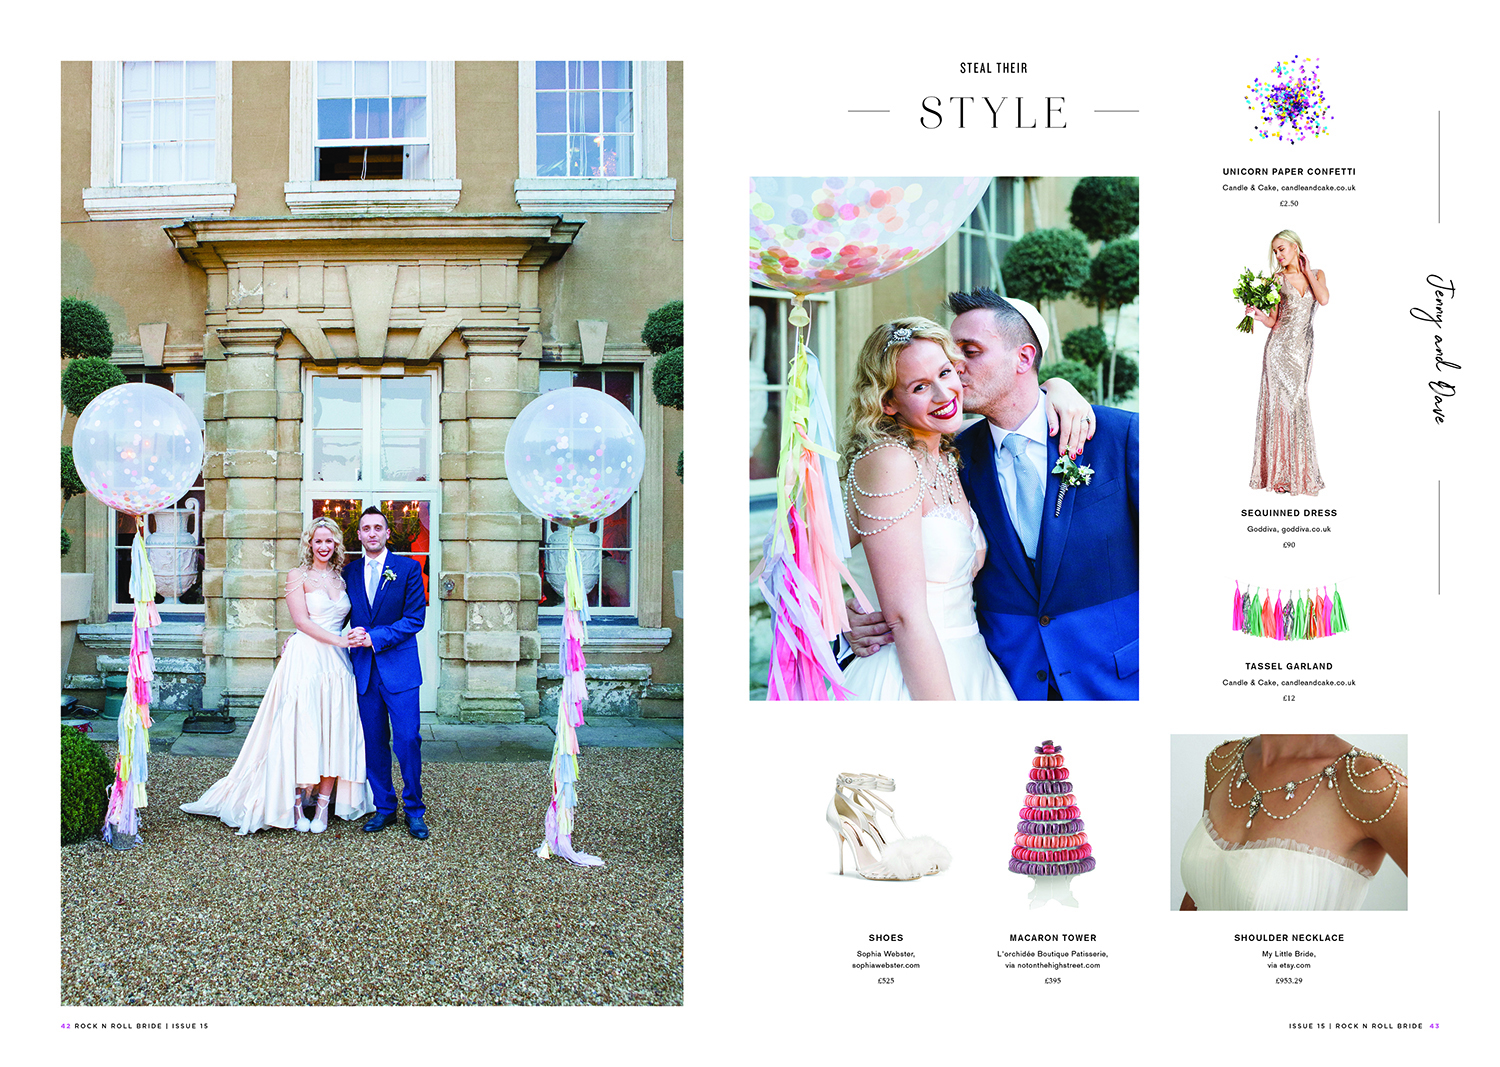 Aynhoe Park wedding, colourful balloon wedding